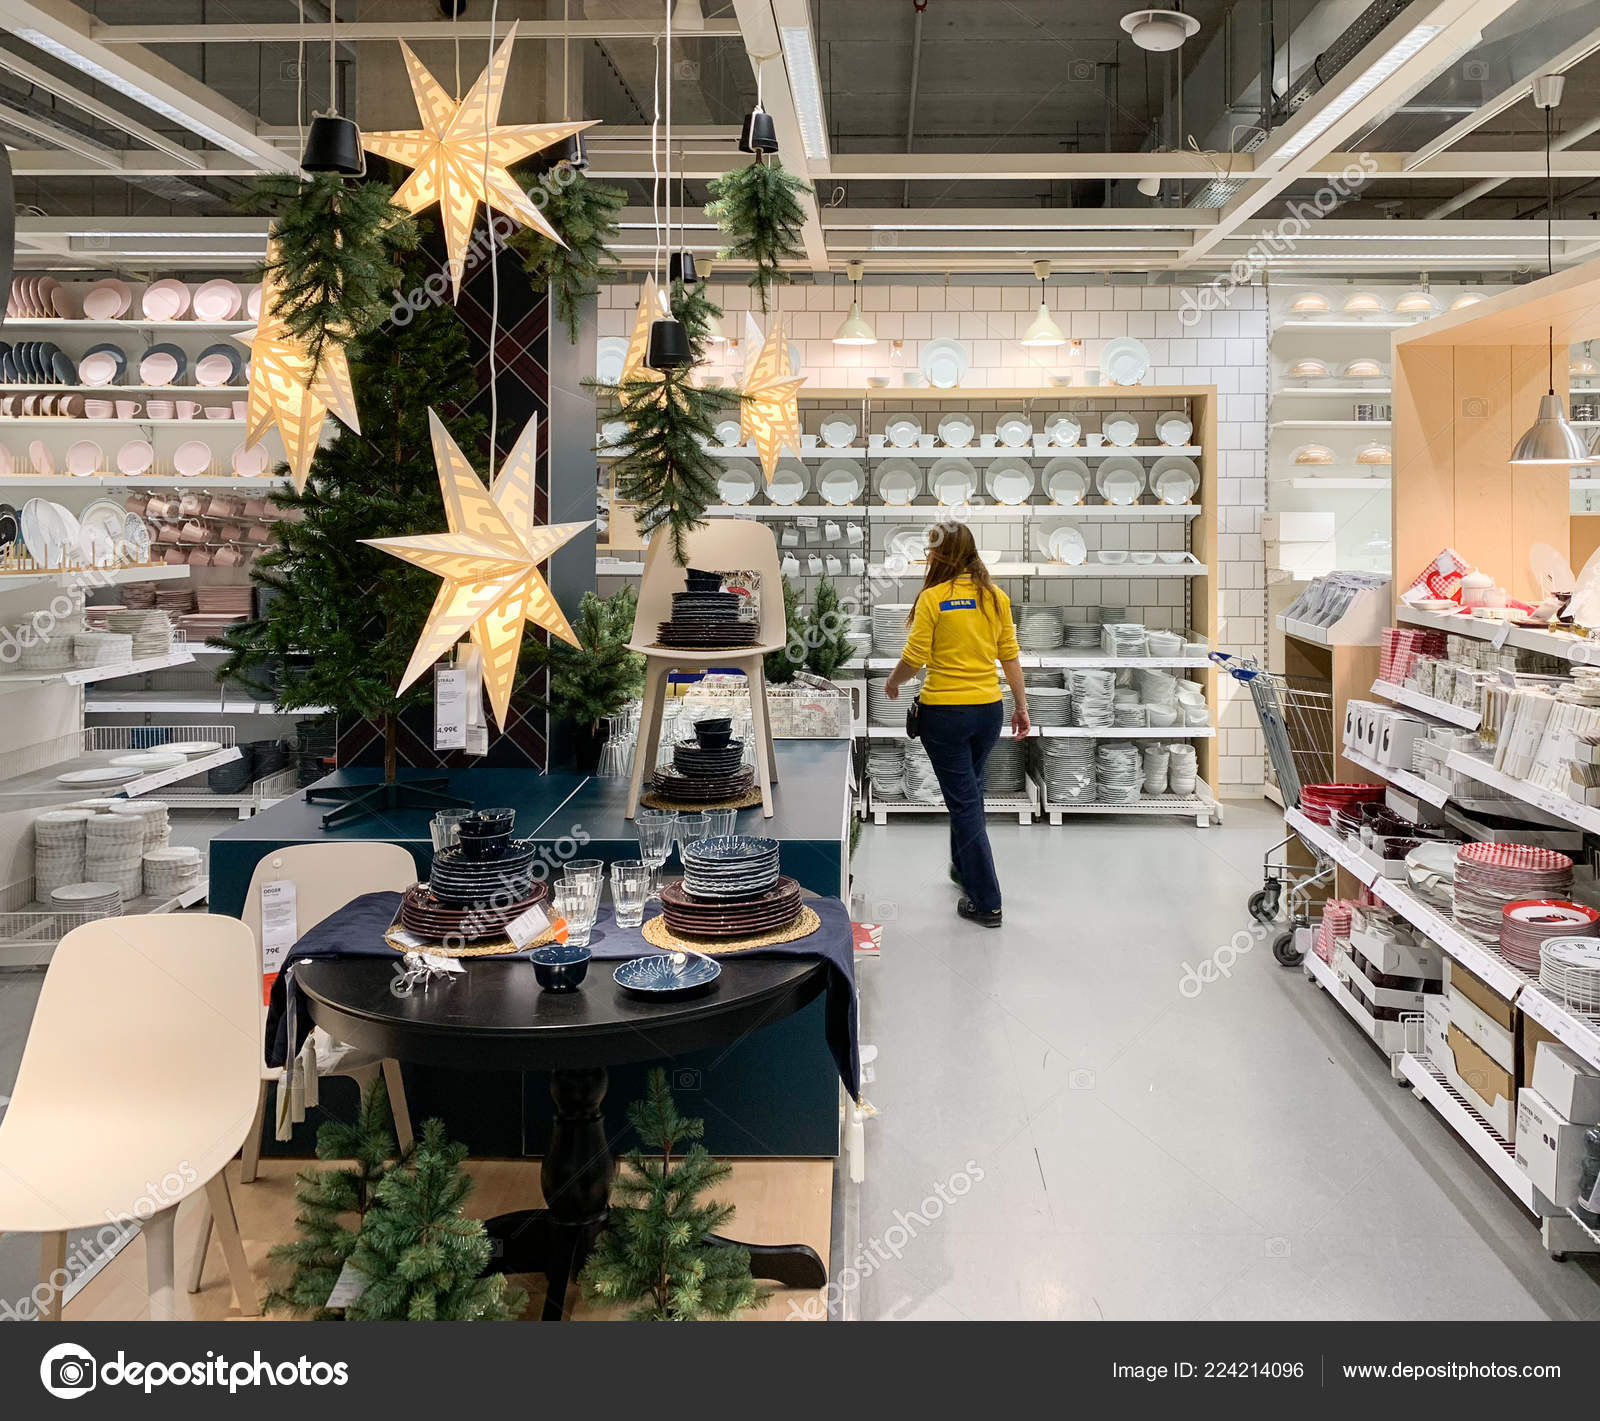 Christmas Tree Store Furniture: Ikea Furniture Store With Christmas Tree And Decorations